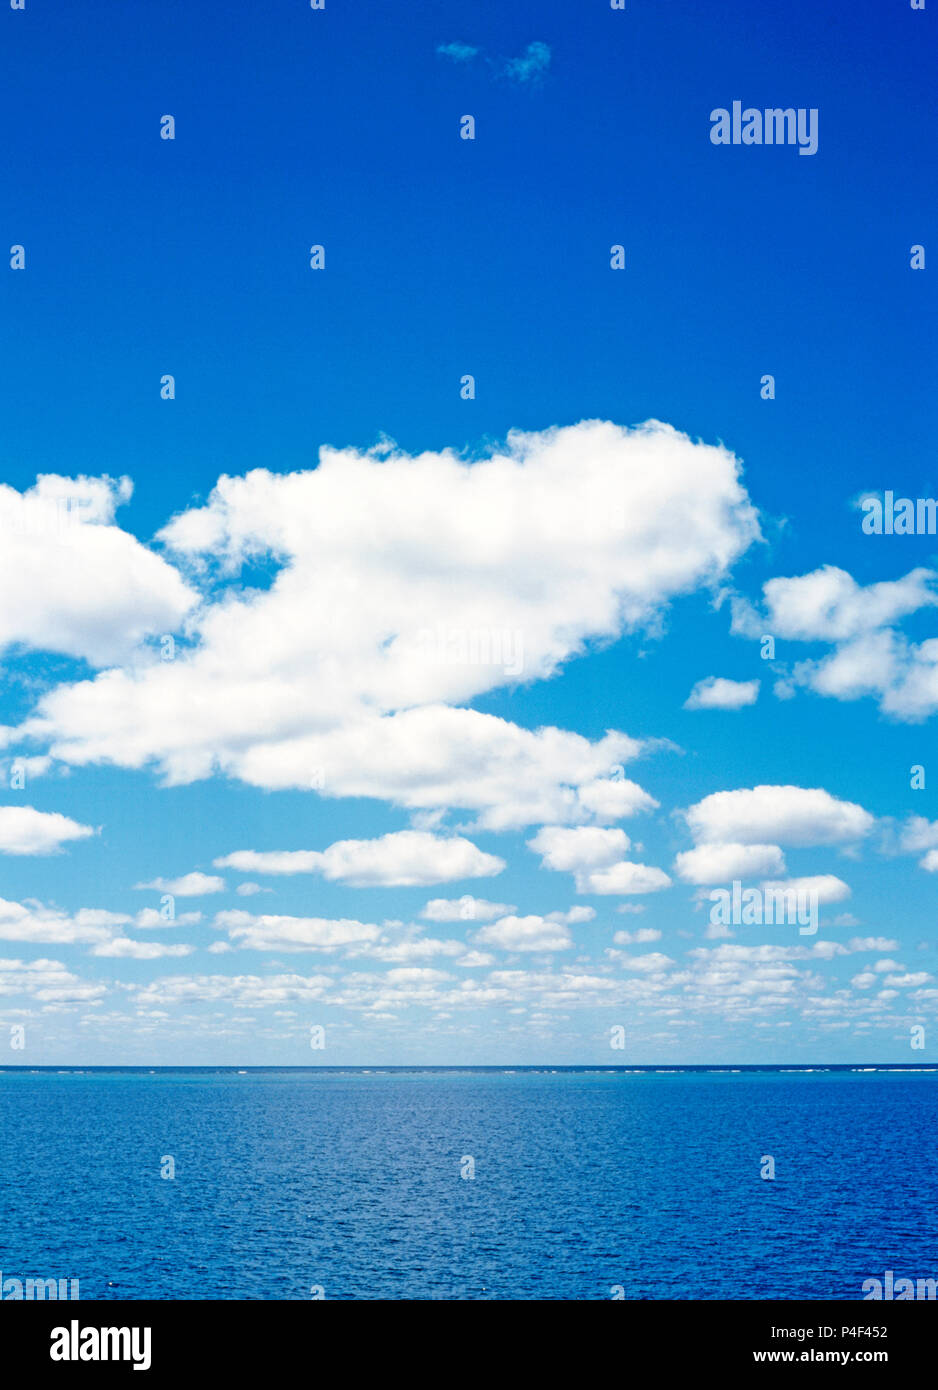 Blue sky with fluffy white clouds over Pacific Ocean horizon of Great Barrier Reef, Queensland, Australia. - Stock Image